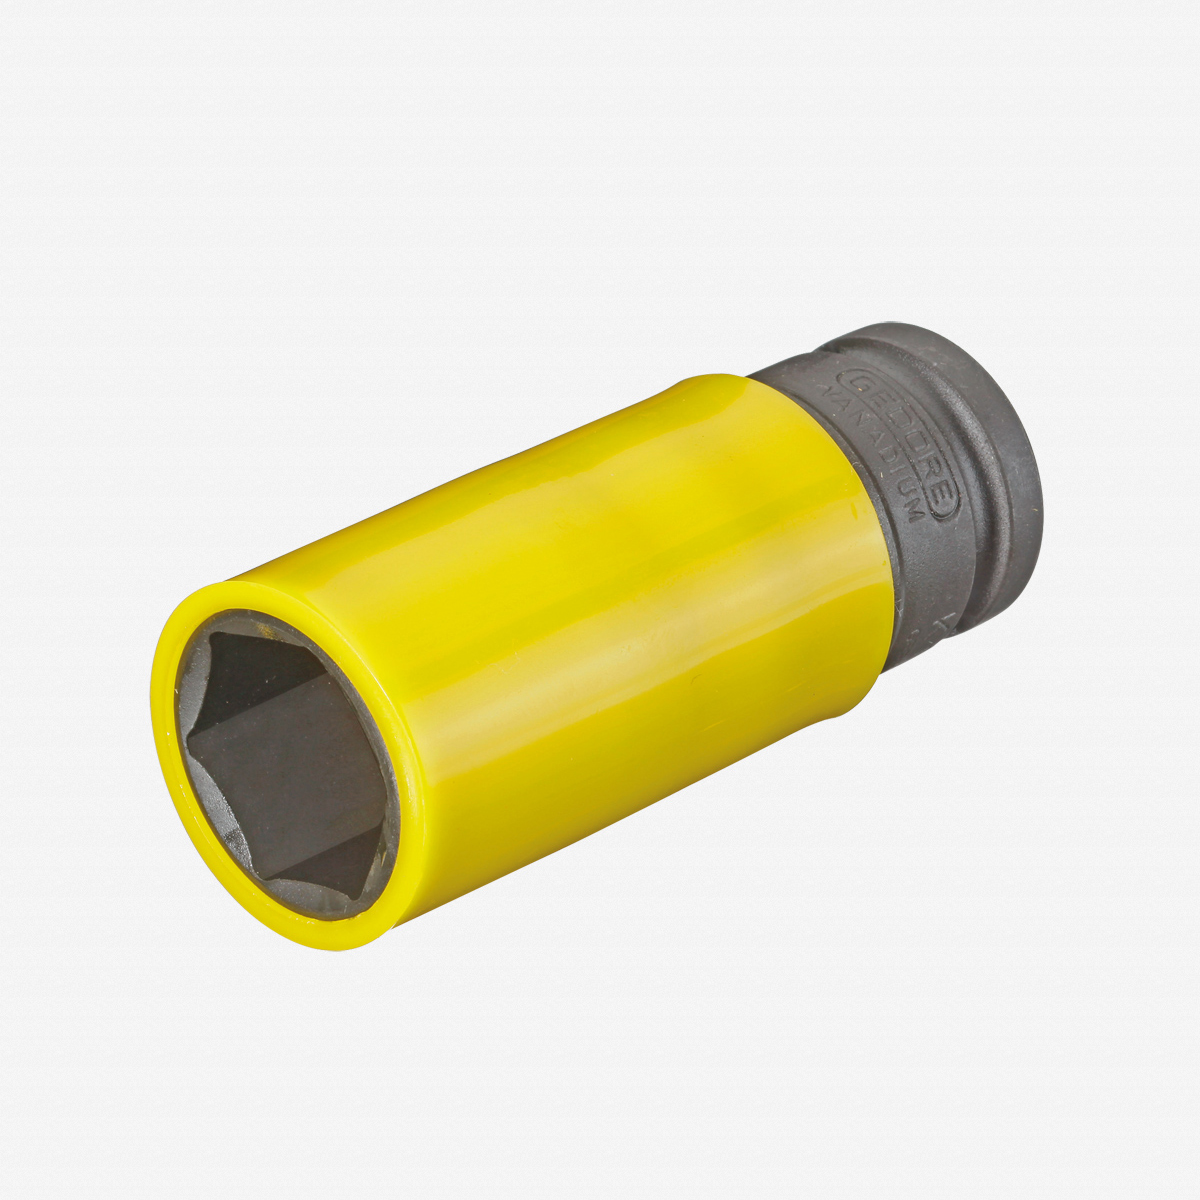 """Gedore K 19 LS 22 Impact socket 1/2"""" with protective sleeve, 22 mm - KC Tool"""